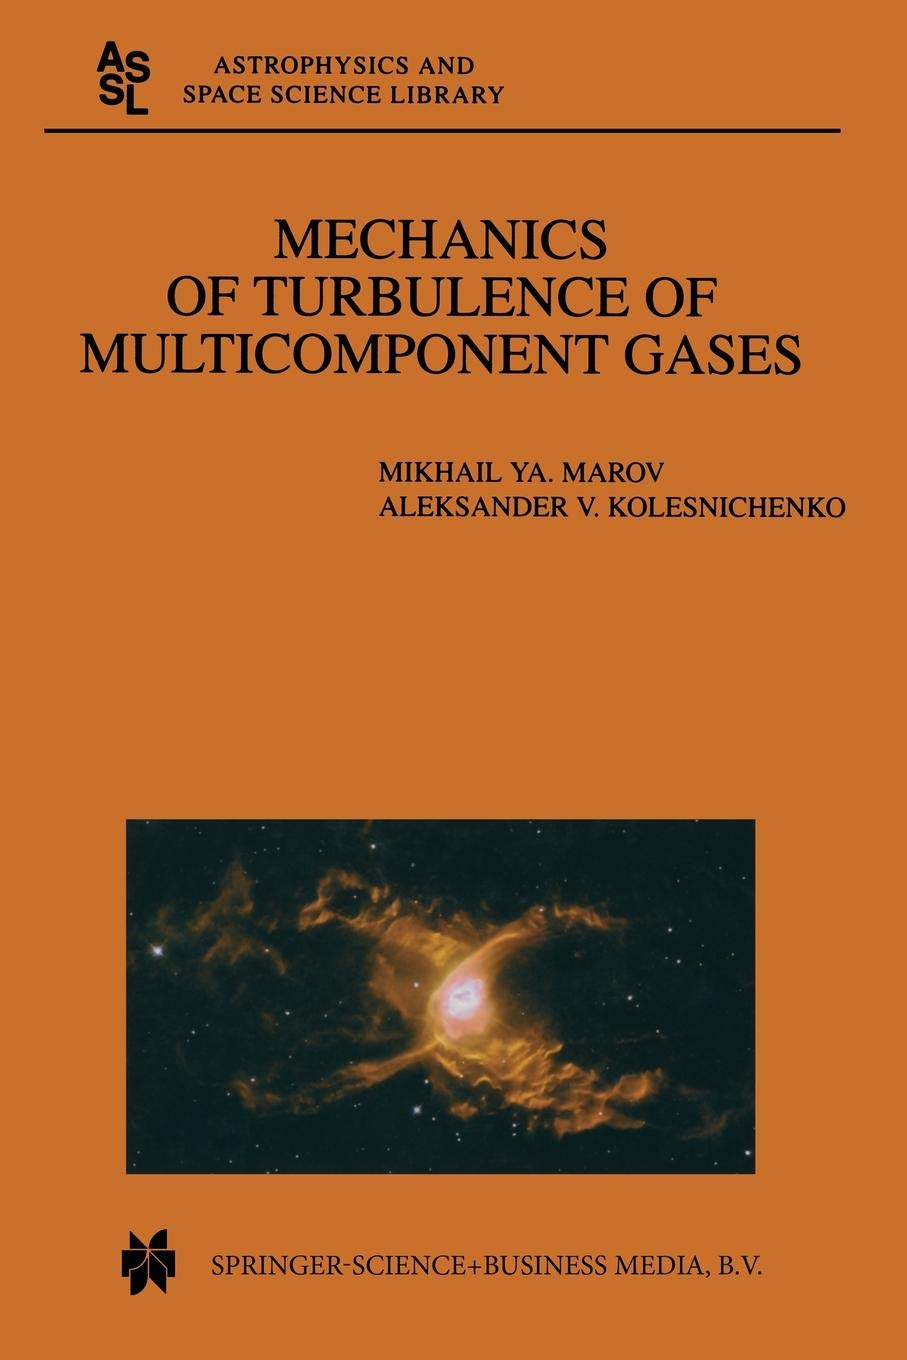 Mechanics of Turbulence of Multicomponent Gases (Astrophysics and Space Science Library)